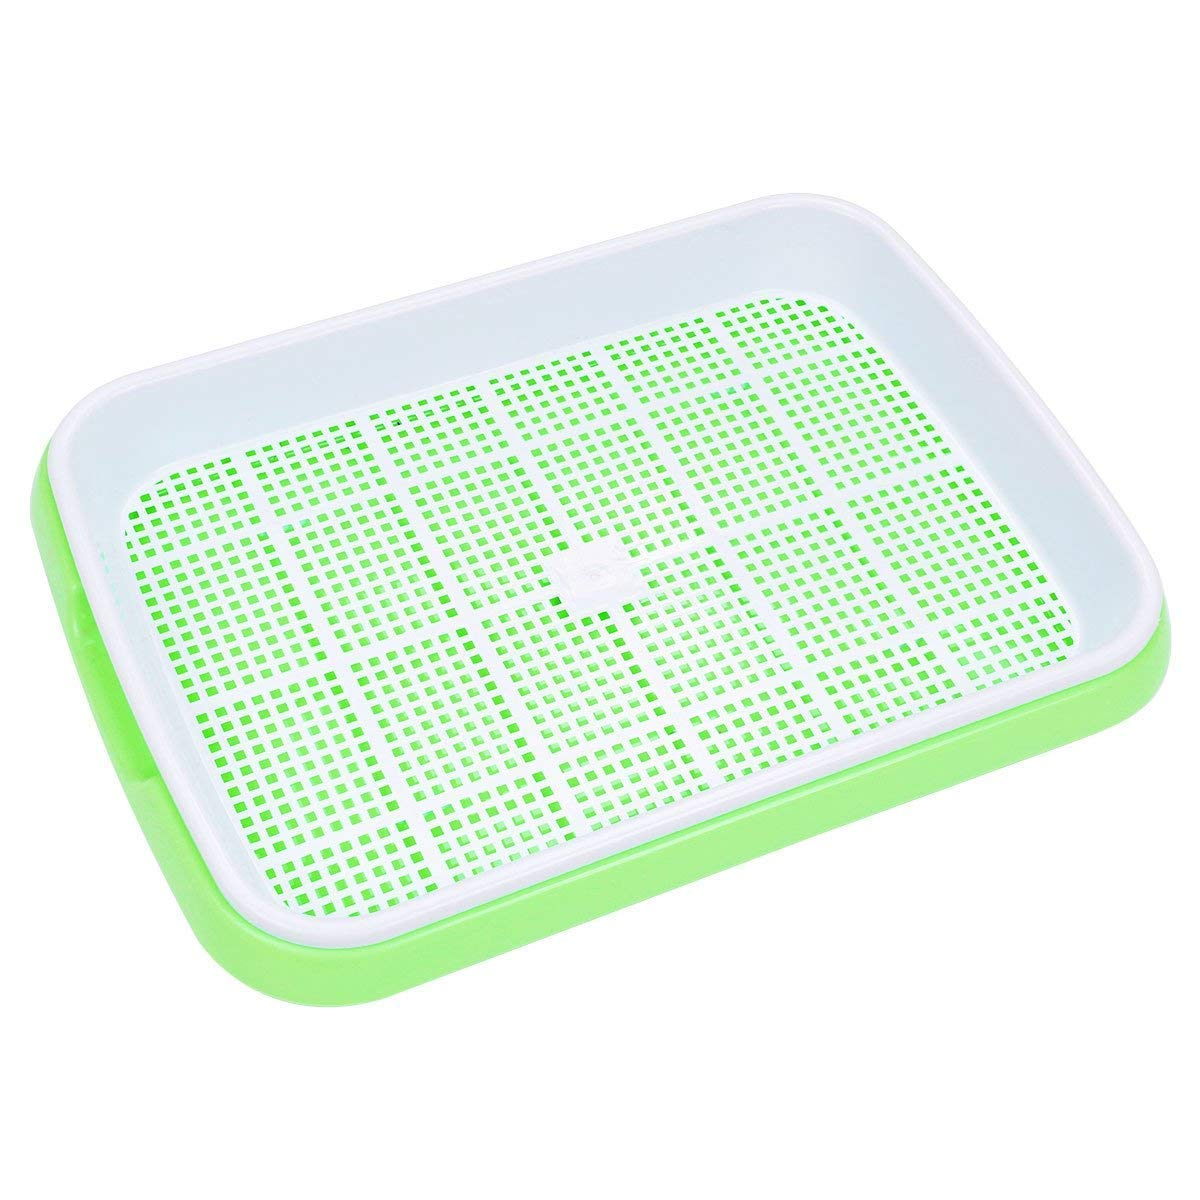 Seed Sprouter Tray BPA Free PP Soil-Free Big Capacity Healthy Wheatgrass Grower 9.84 x 13.4inch